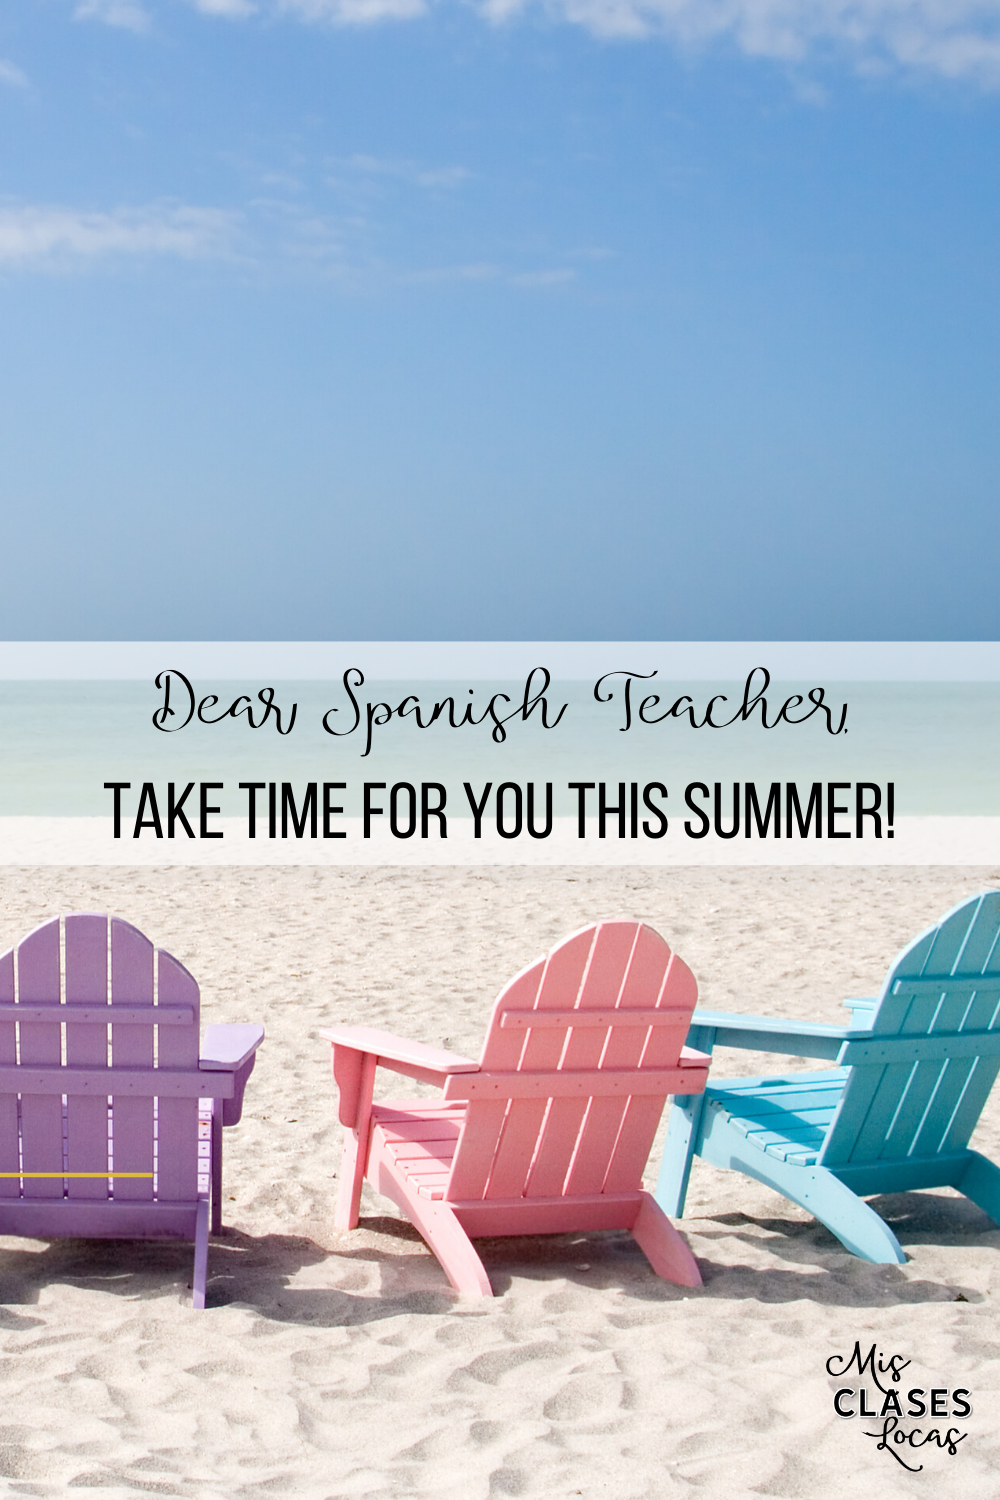 Dear Spanish Teacher, Take time for YOU this summer! - shared by Mis Clases Locas